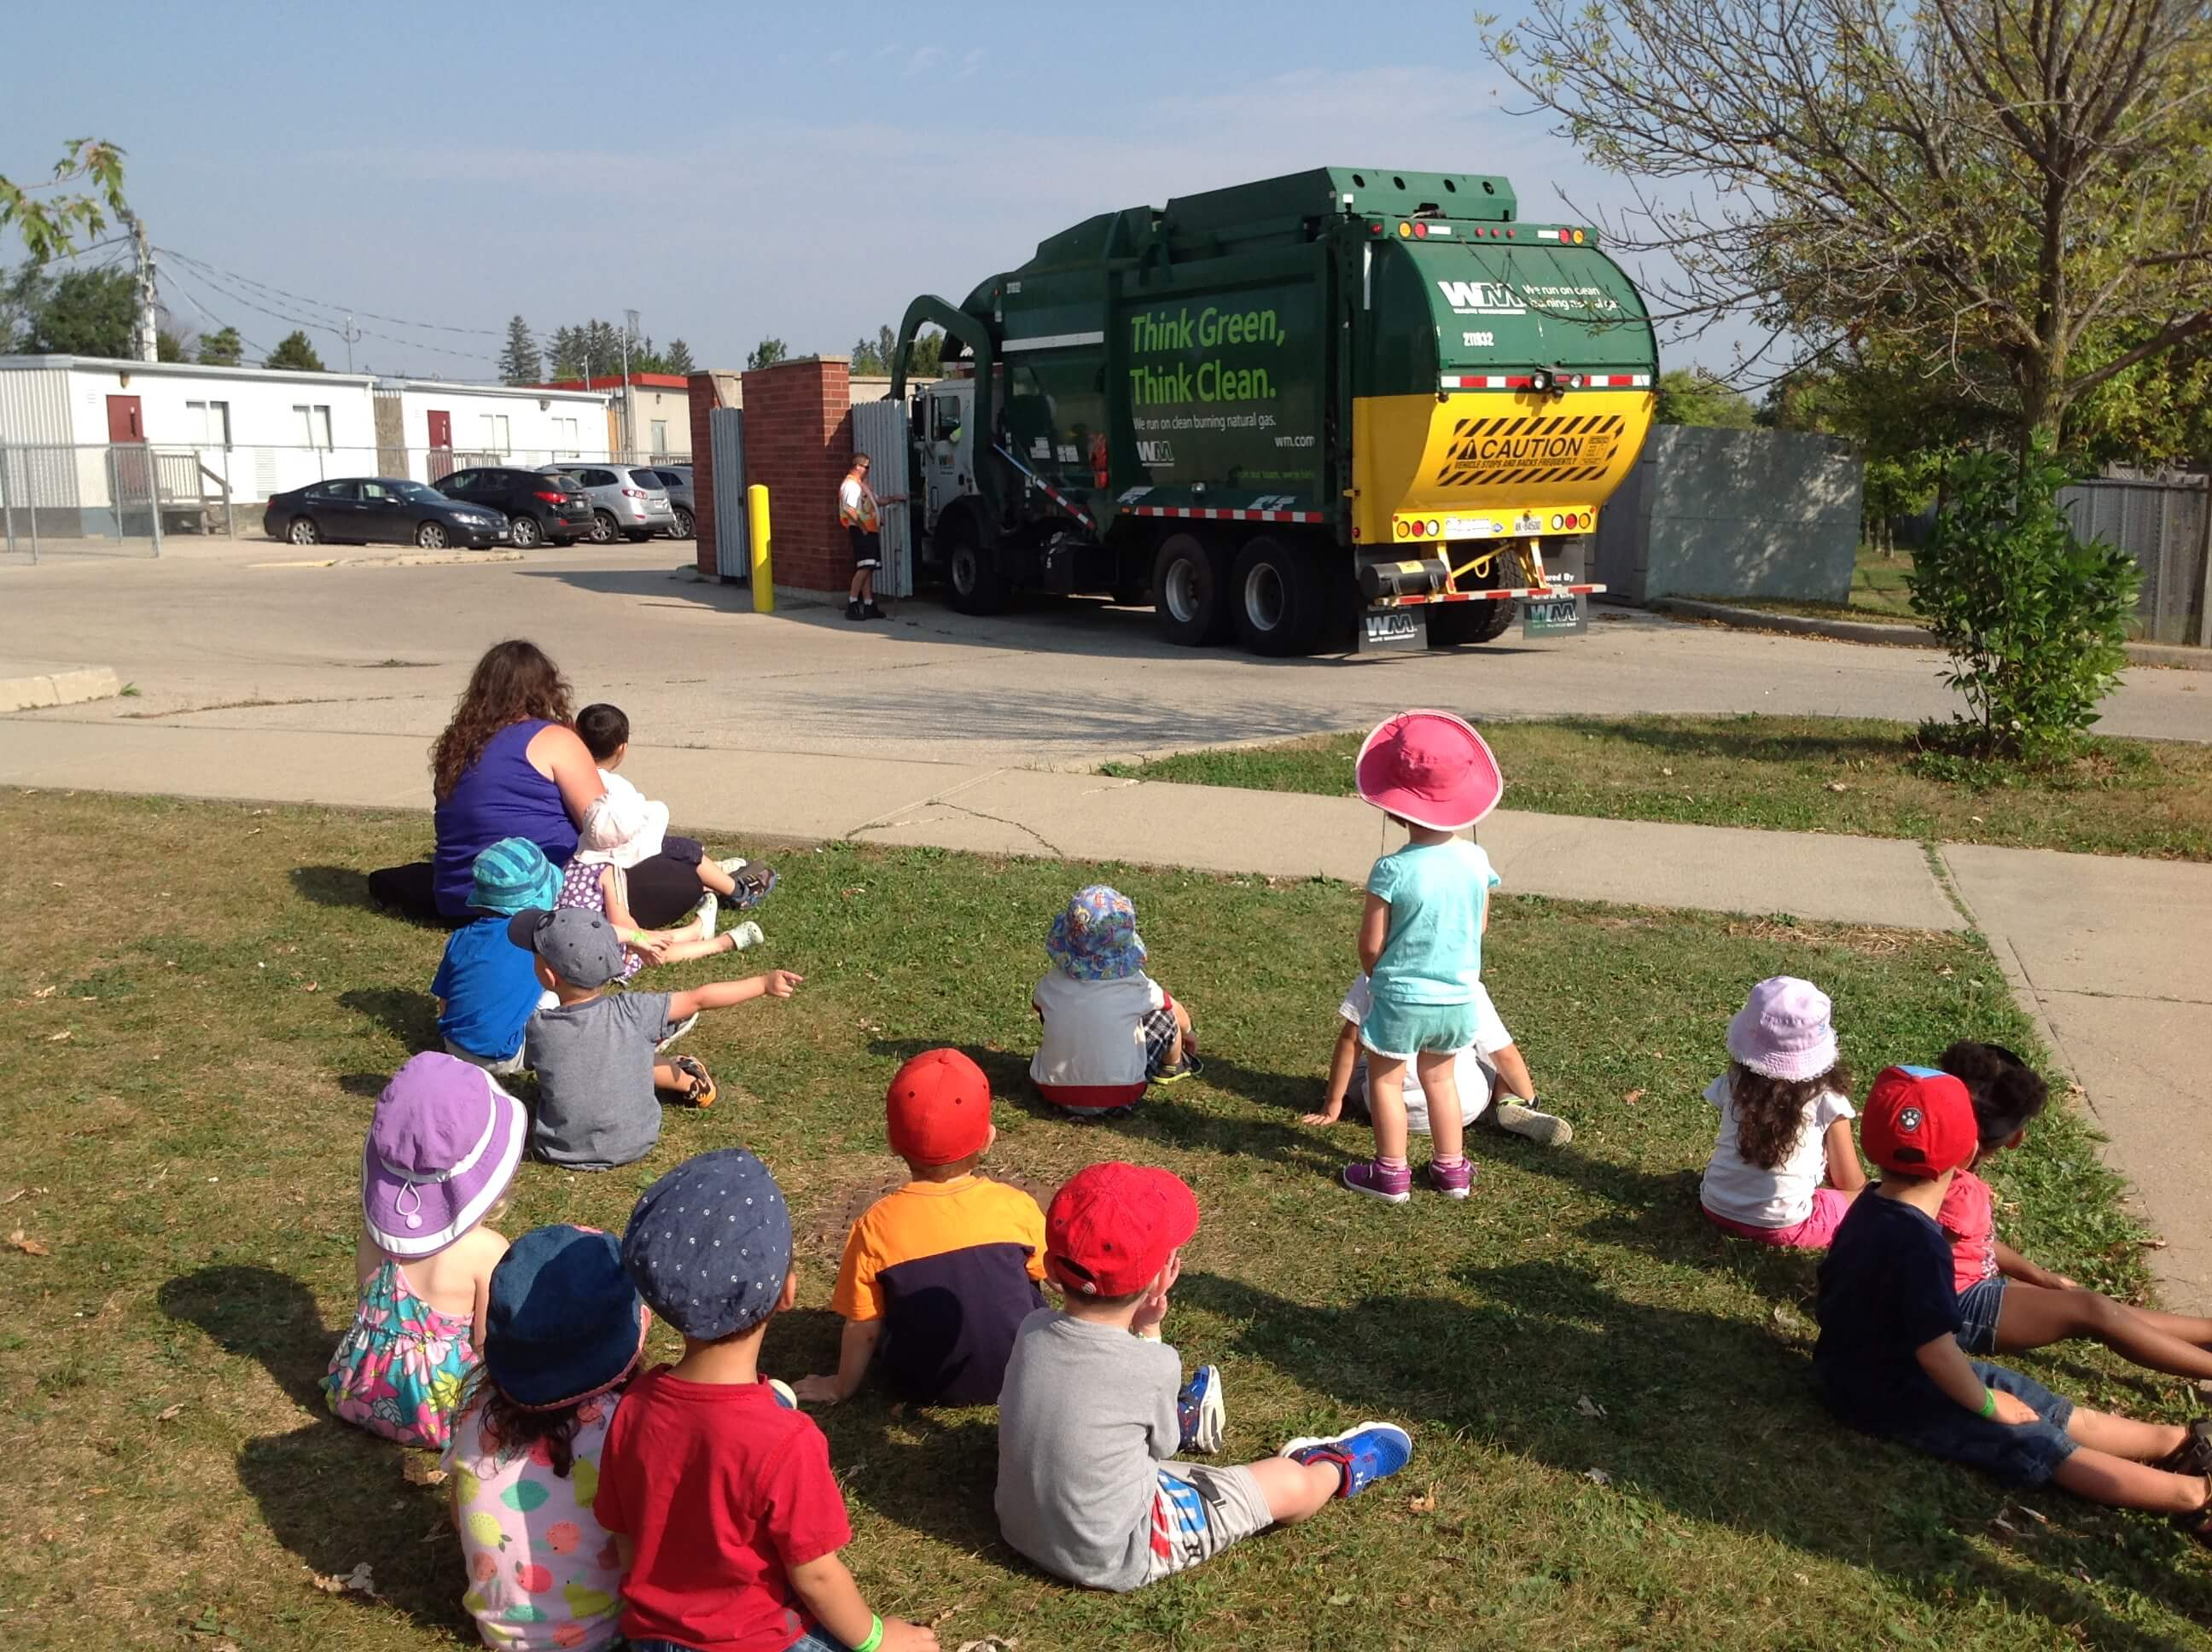 children watching a garbage truck